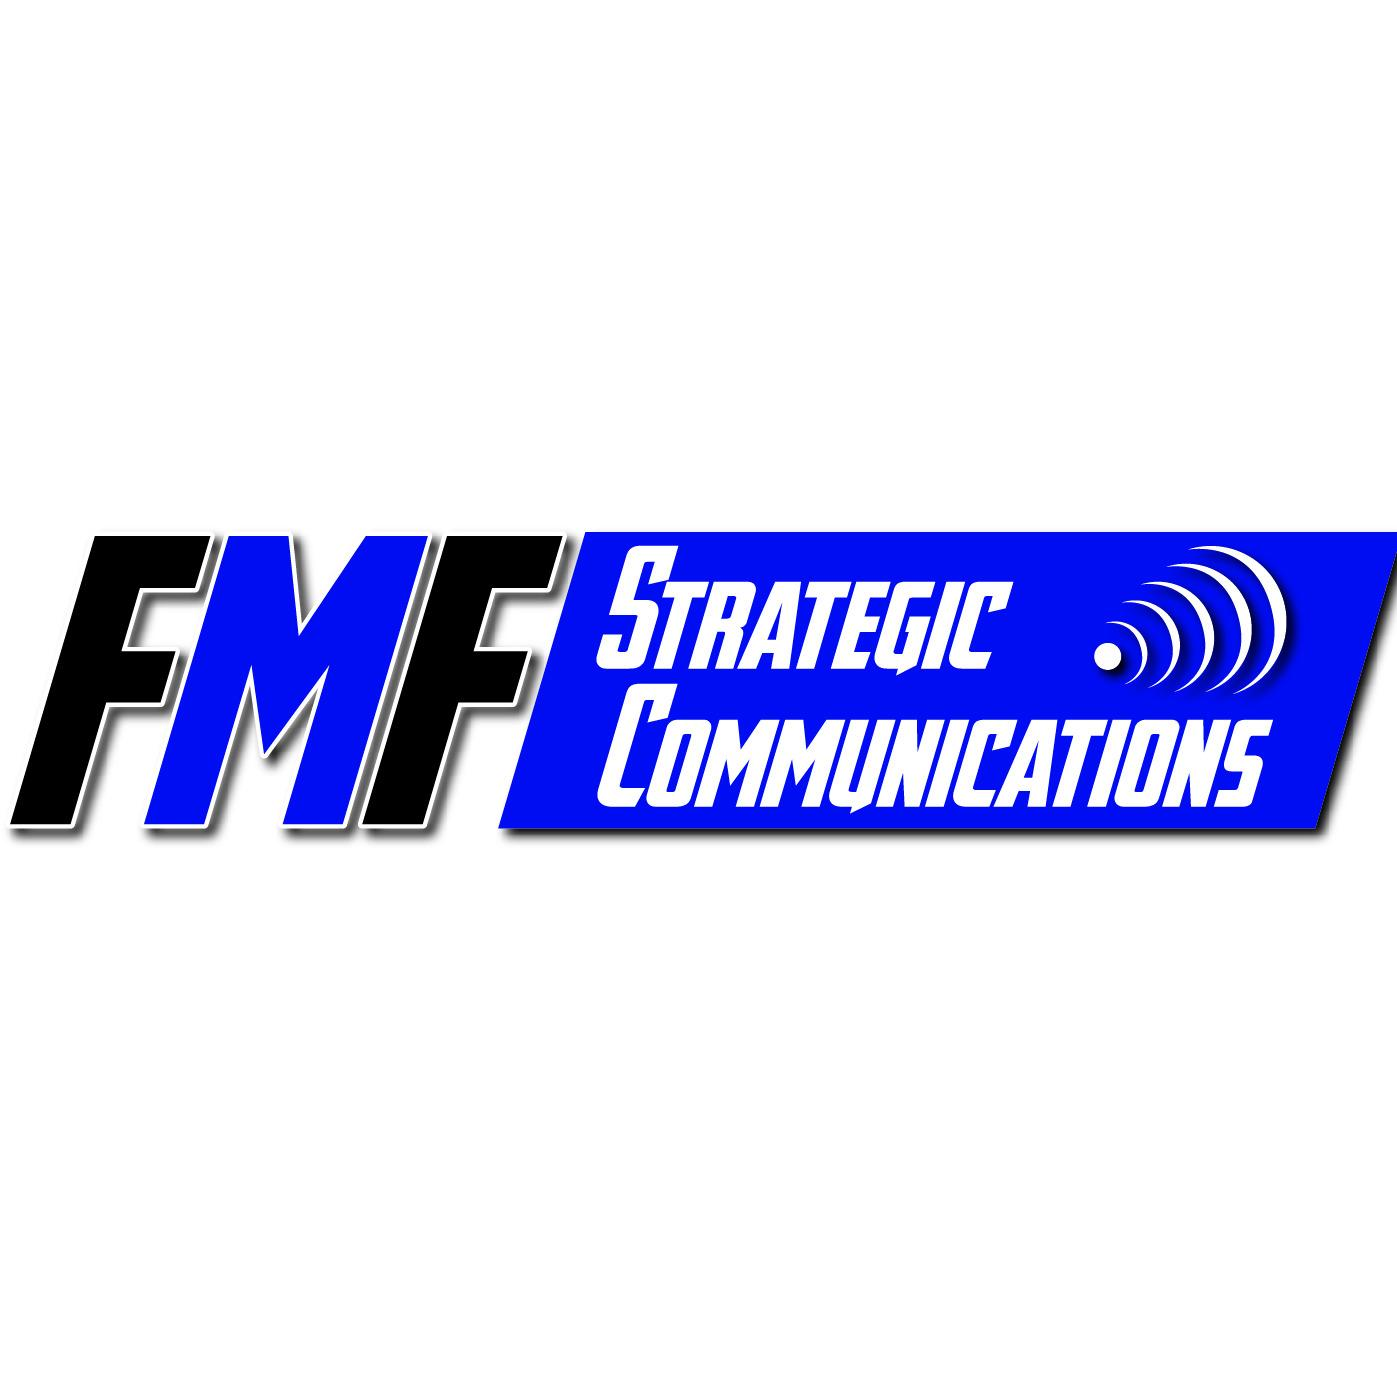 FMF Strategic Communications